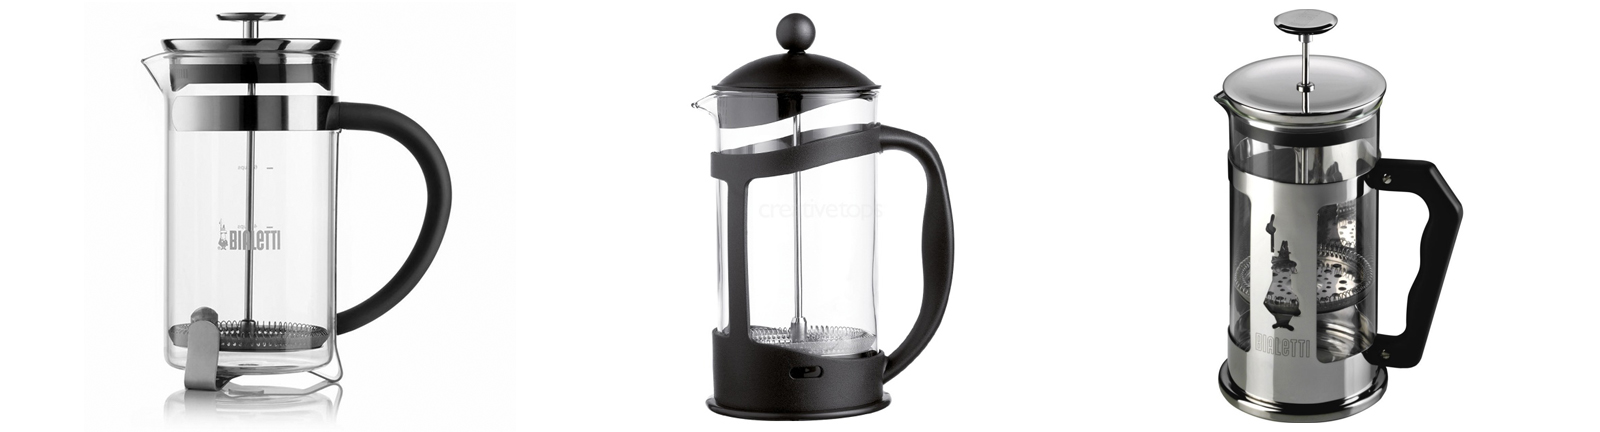 french press konvičky